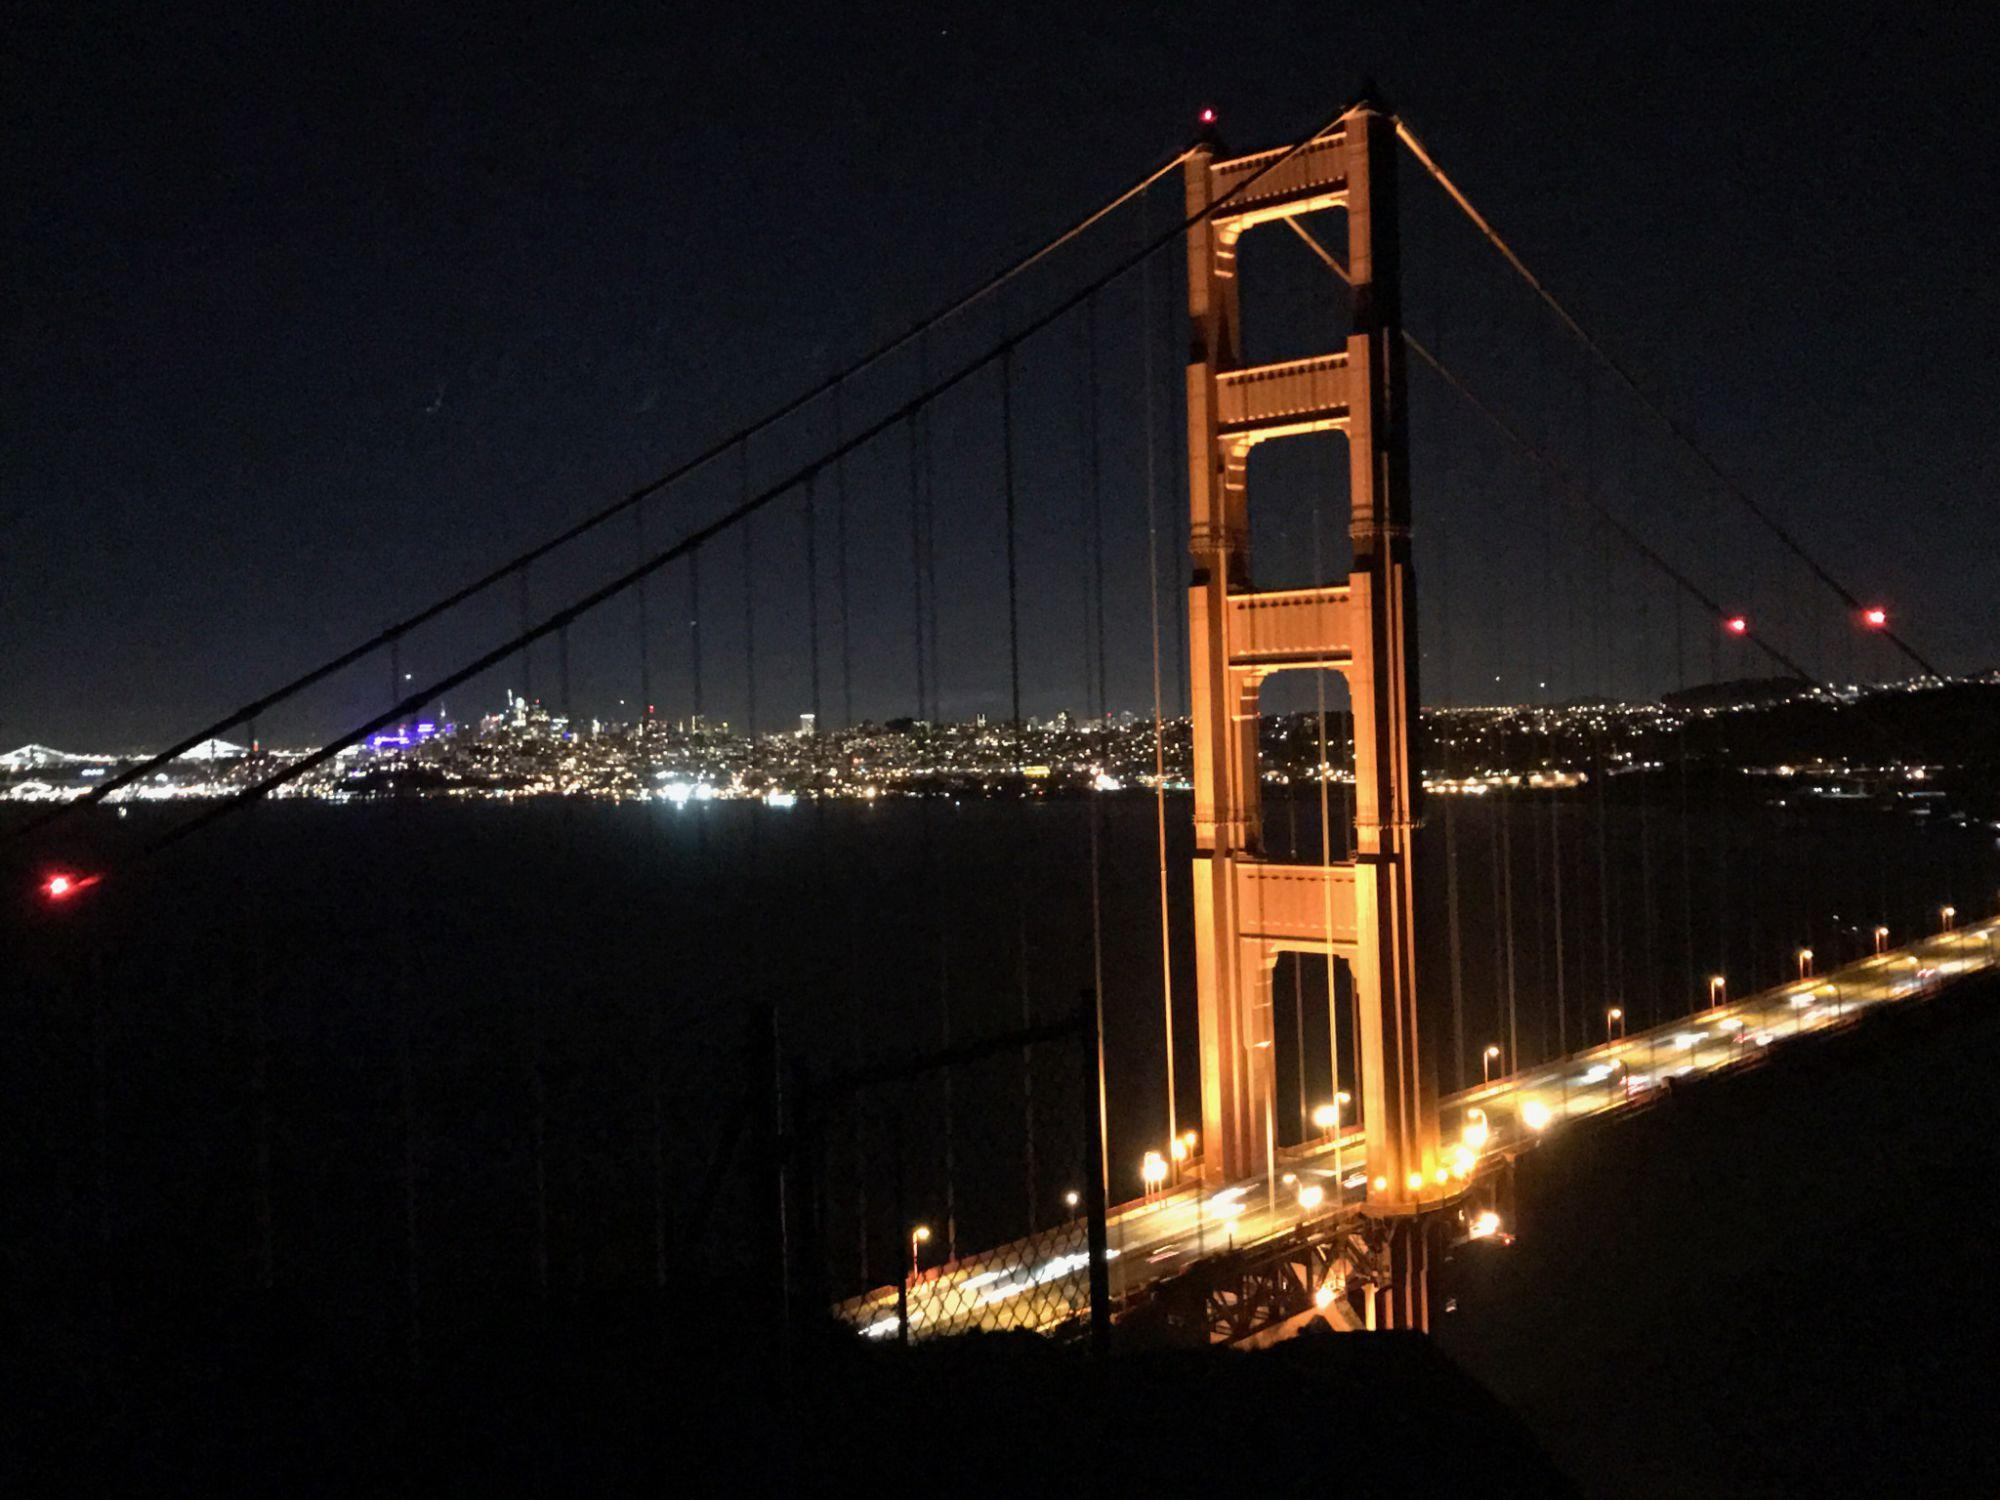 Photo of Golden Gate Bridge taken with iPhone 7